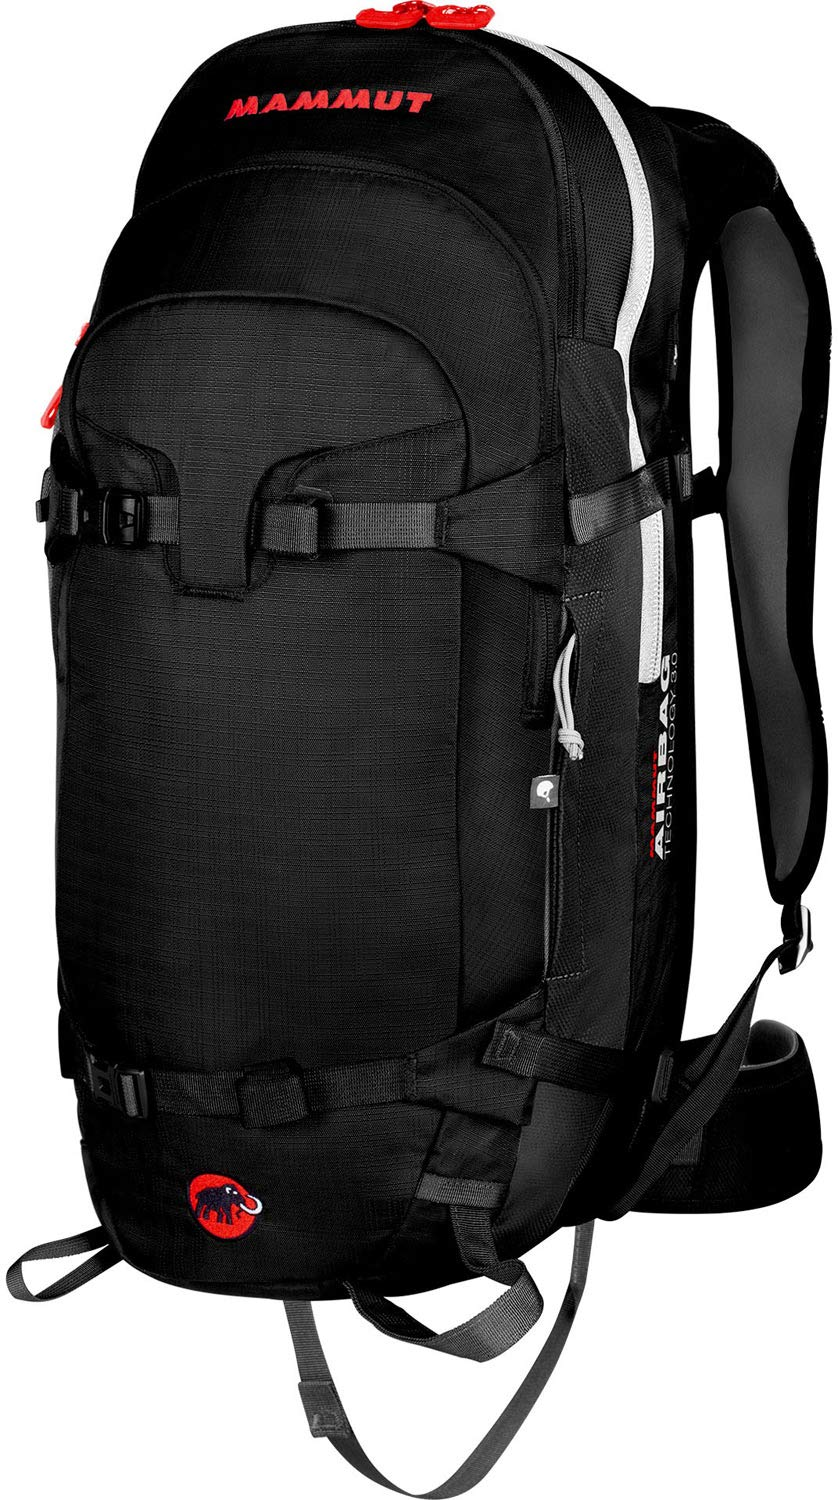 Mammut Pro Protection Airbag 3.0 // SET with Airbag black 35 Litre by Mammut